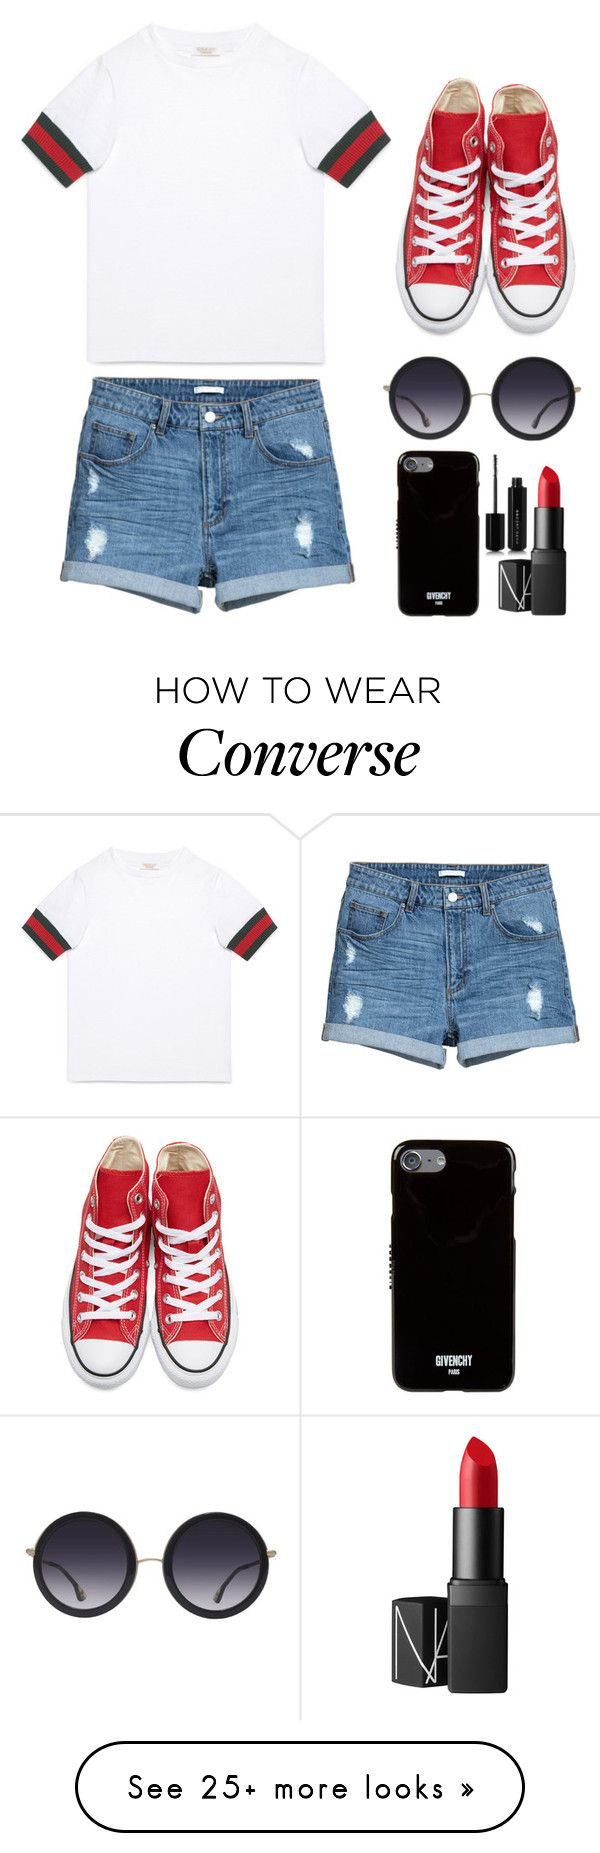 """""Denim"" Outfit #5"" by fedelinewiarta on Polyvore featuring Gucci, Converse, NARS Cosmetics, Alice + Olivia, Givenchy and Marc Jacobs"